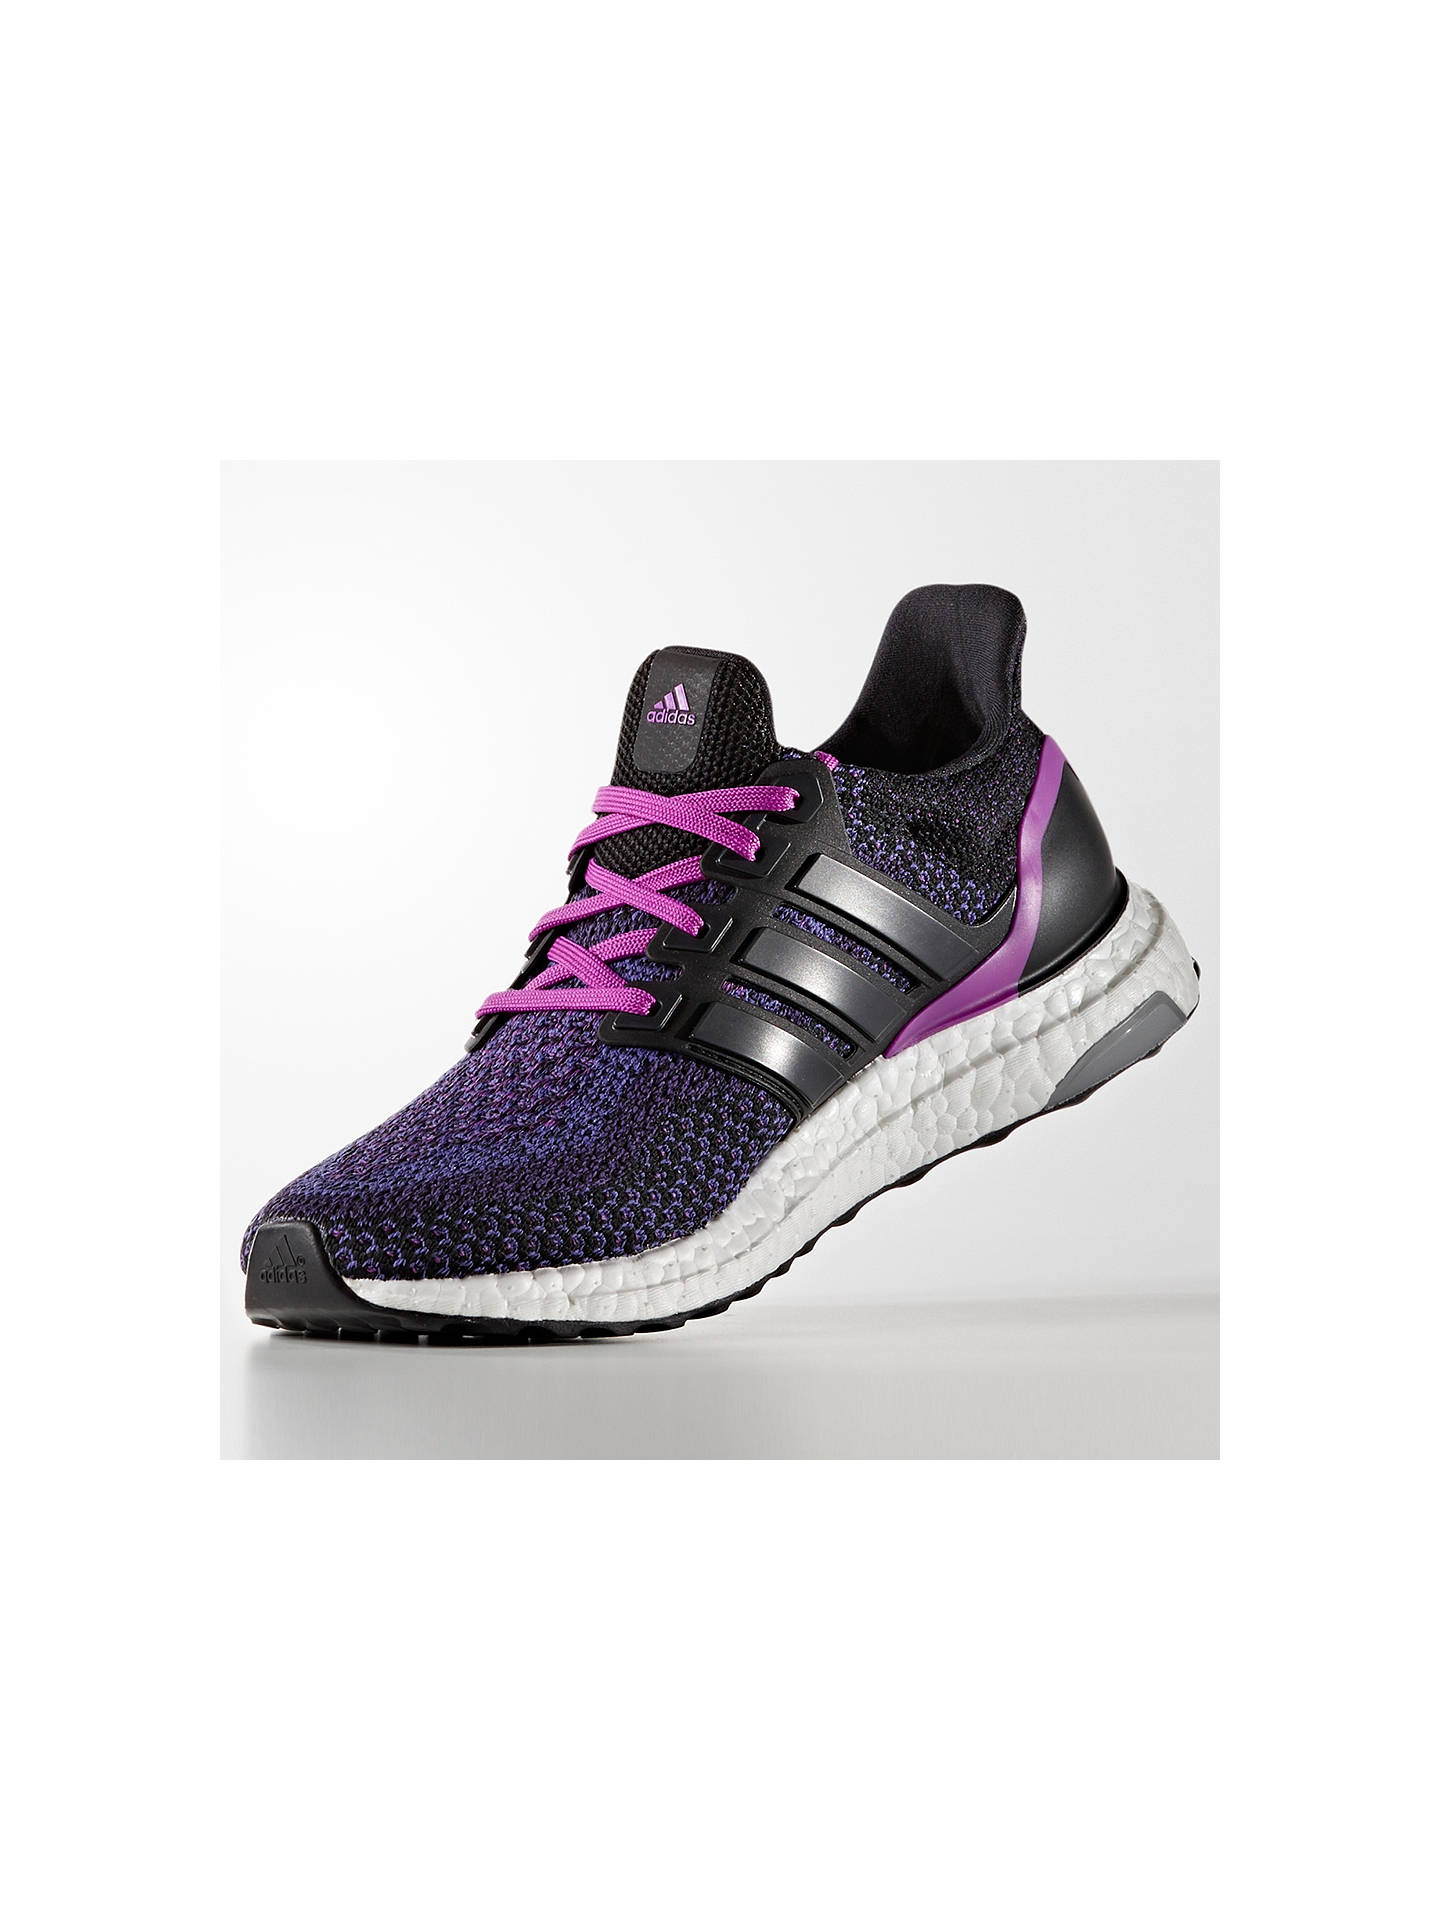 newest 76afc 5ea83 ... discount buyadidas ultra boost womens running shoes black purple 4  online at johnlewis. 34f39 4caa8